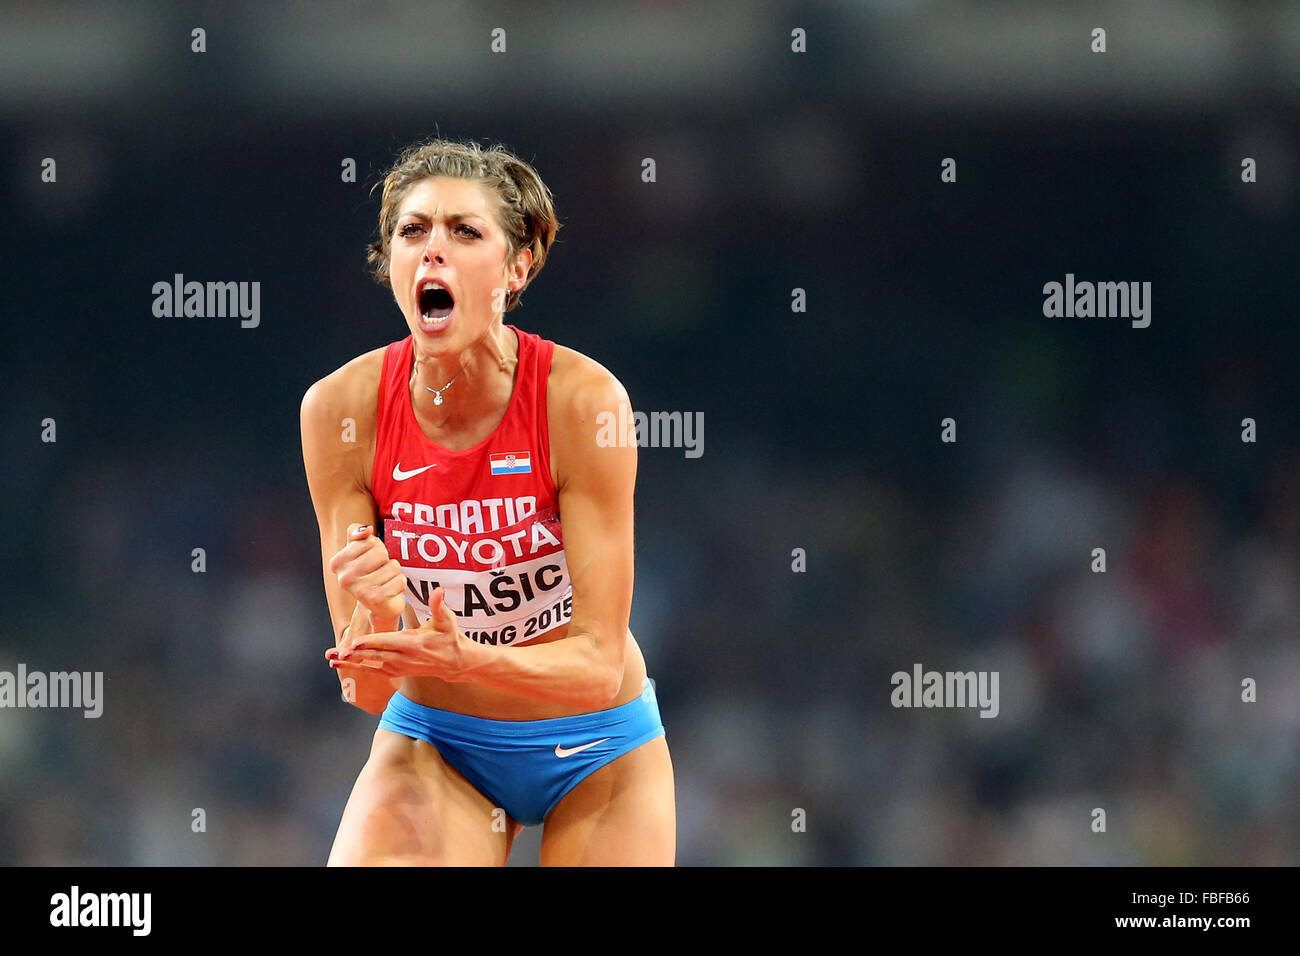 IAAF World Championships, Beijing 2015.Blanka Vlasic of Croatia reacts after winning silver in the Women's High - Stock Image